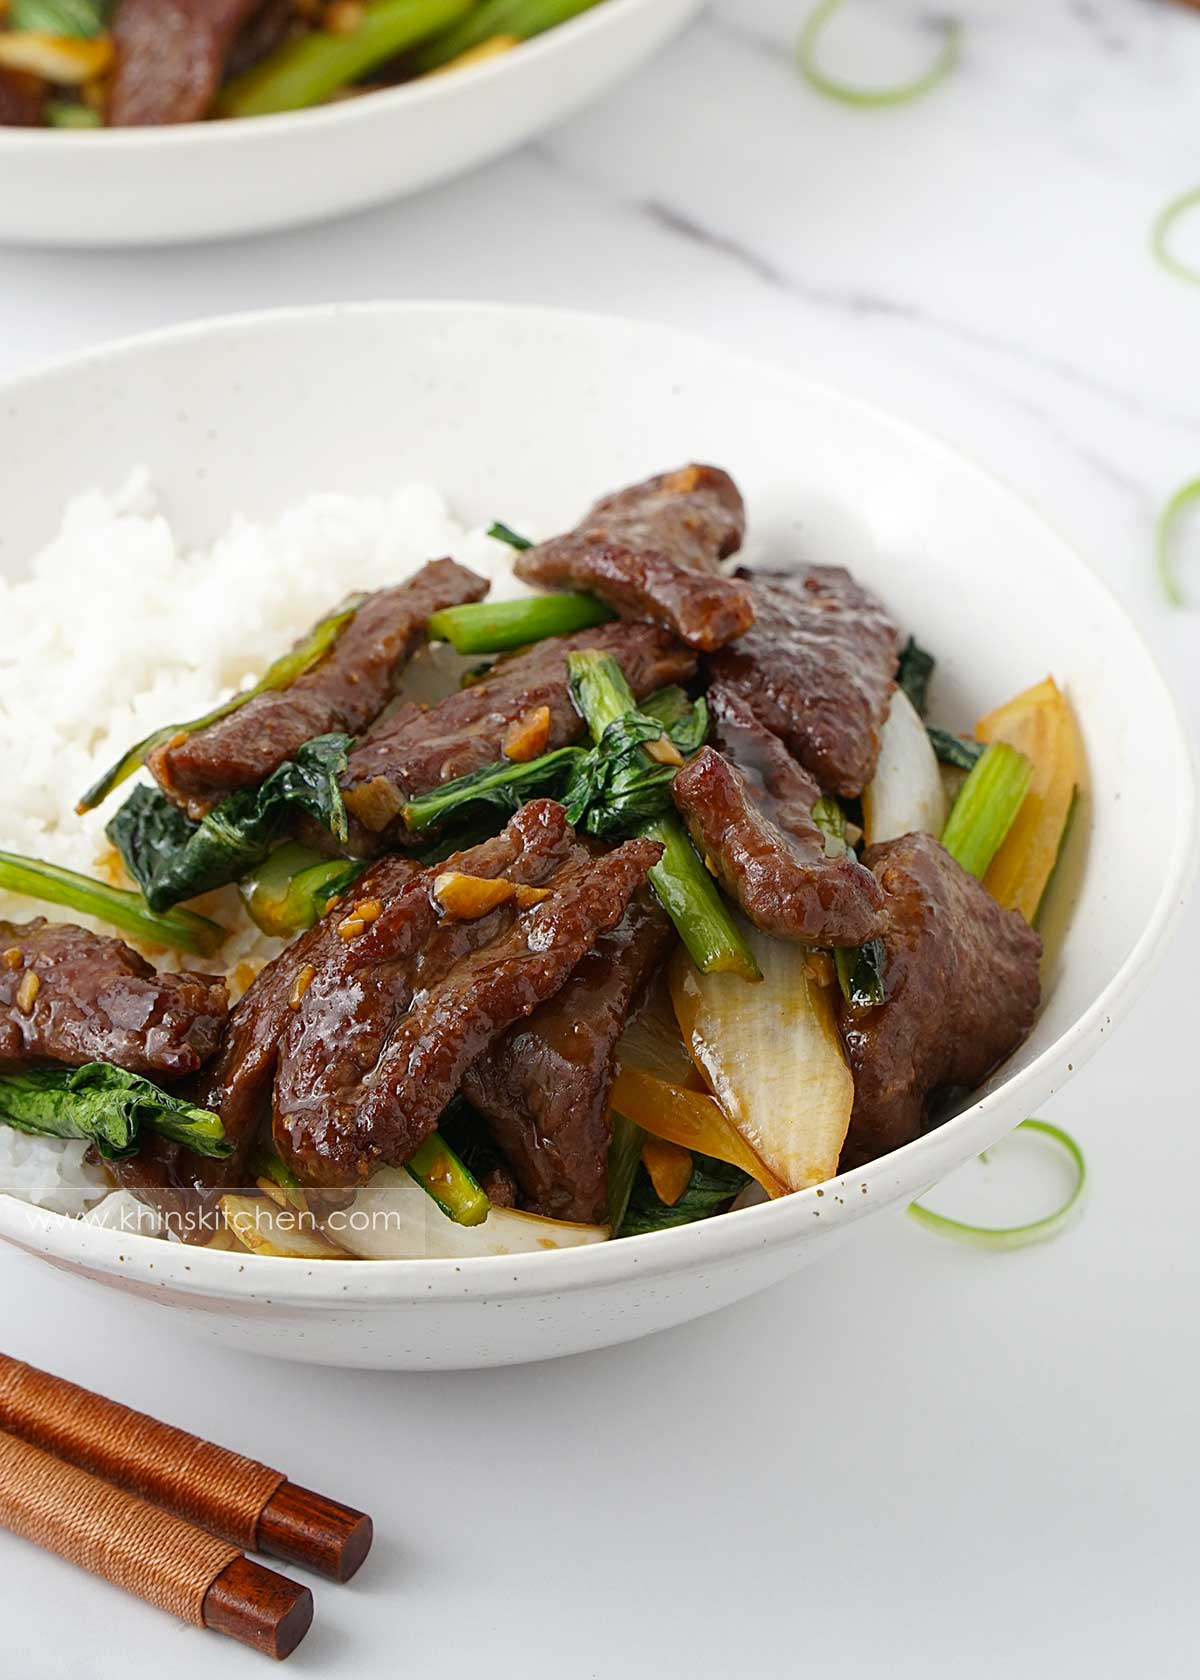 A white bowl containing plain rice, stir fry beef and green vegetables. Wooden chopstick on the left corner.